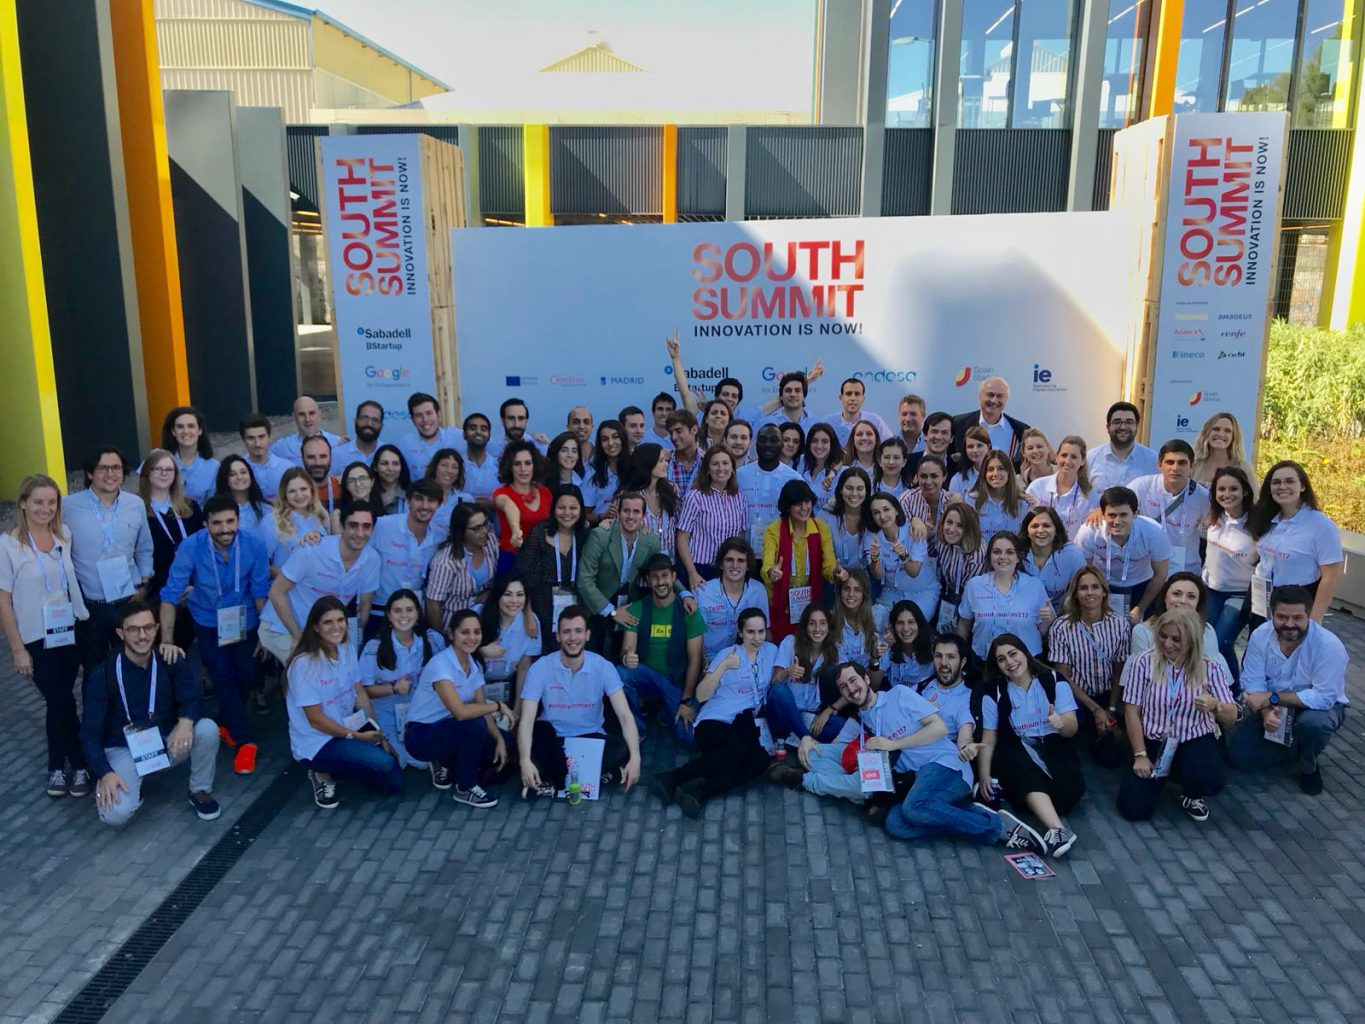 He sido voluntario en South Summit 2017